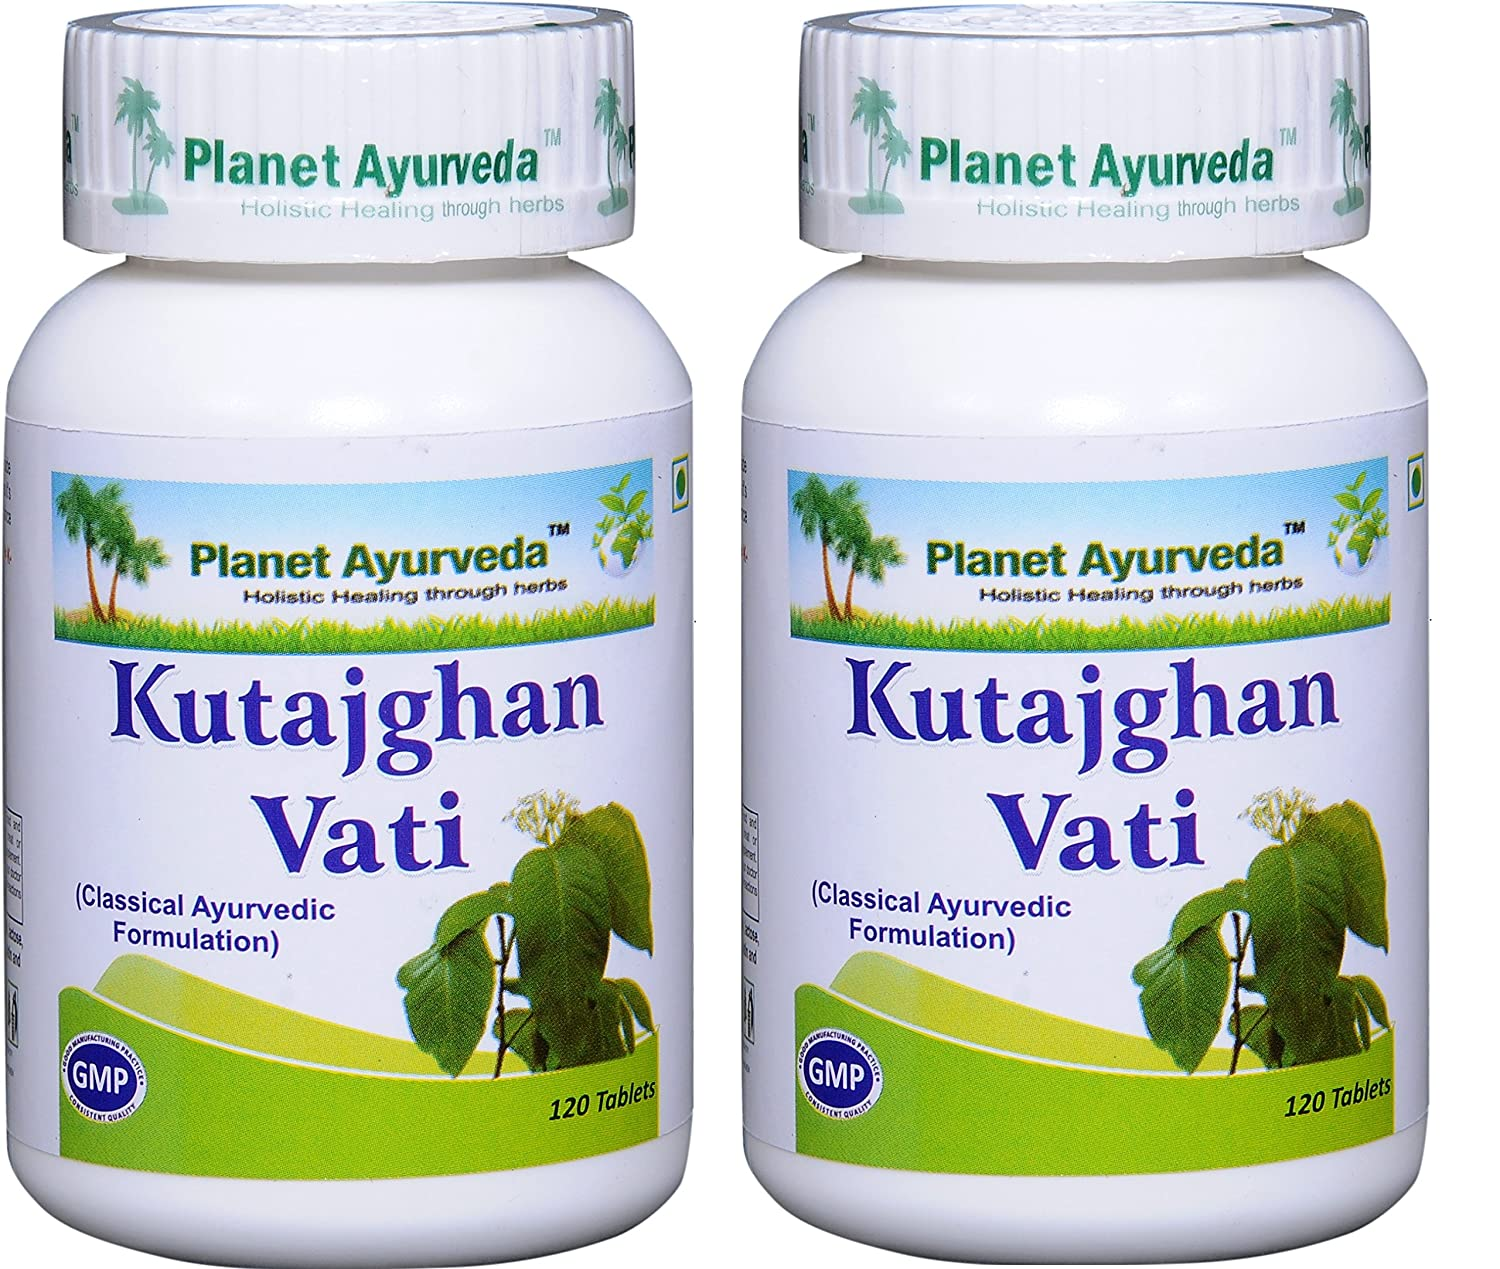 Planet Ayurveda Kutajghan Vati – Herbal Tablets, 100 Natural – 2 Bottles Each Bottle contains 120 tablets